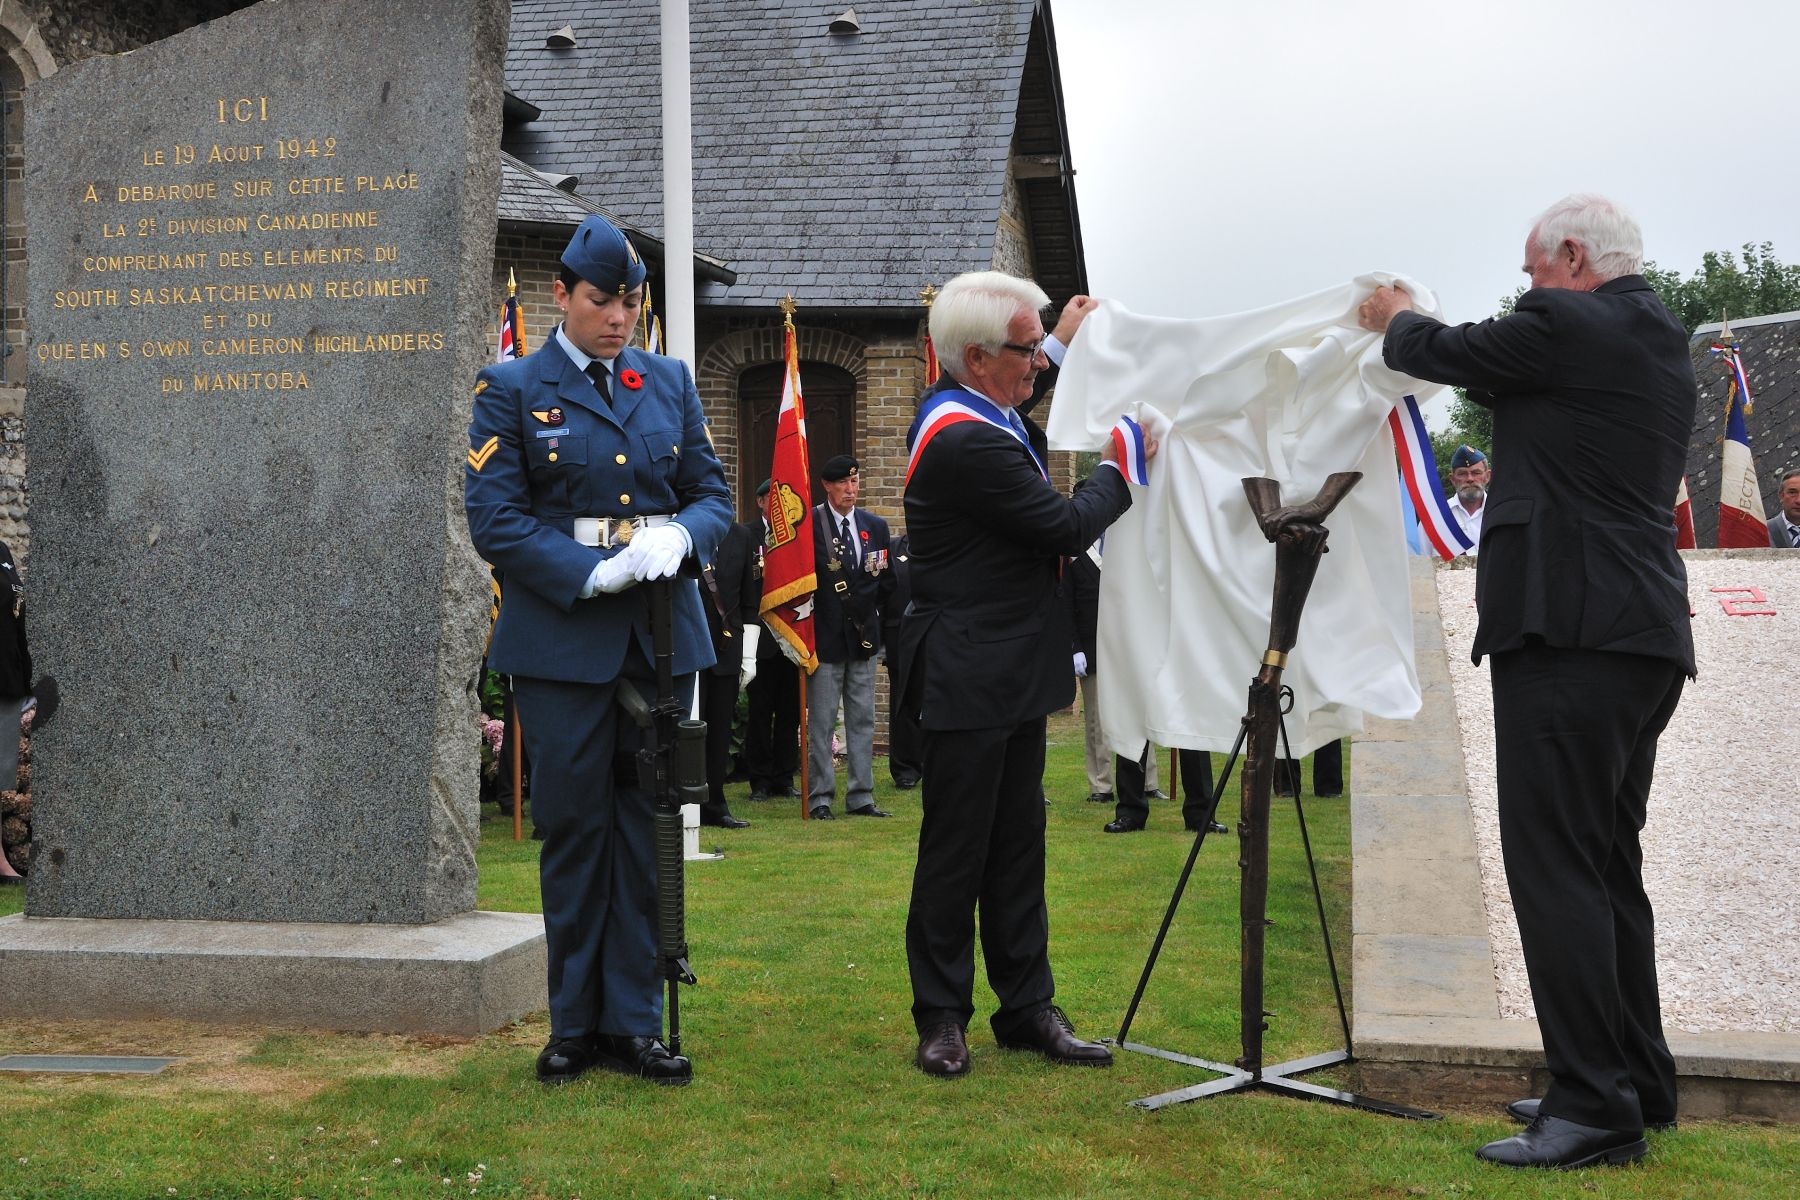 Two commemorative sculptures were unveiled during the event.